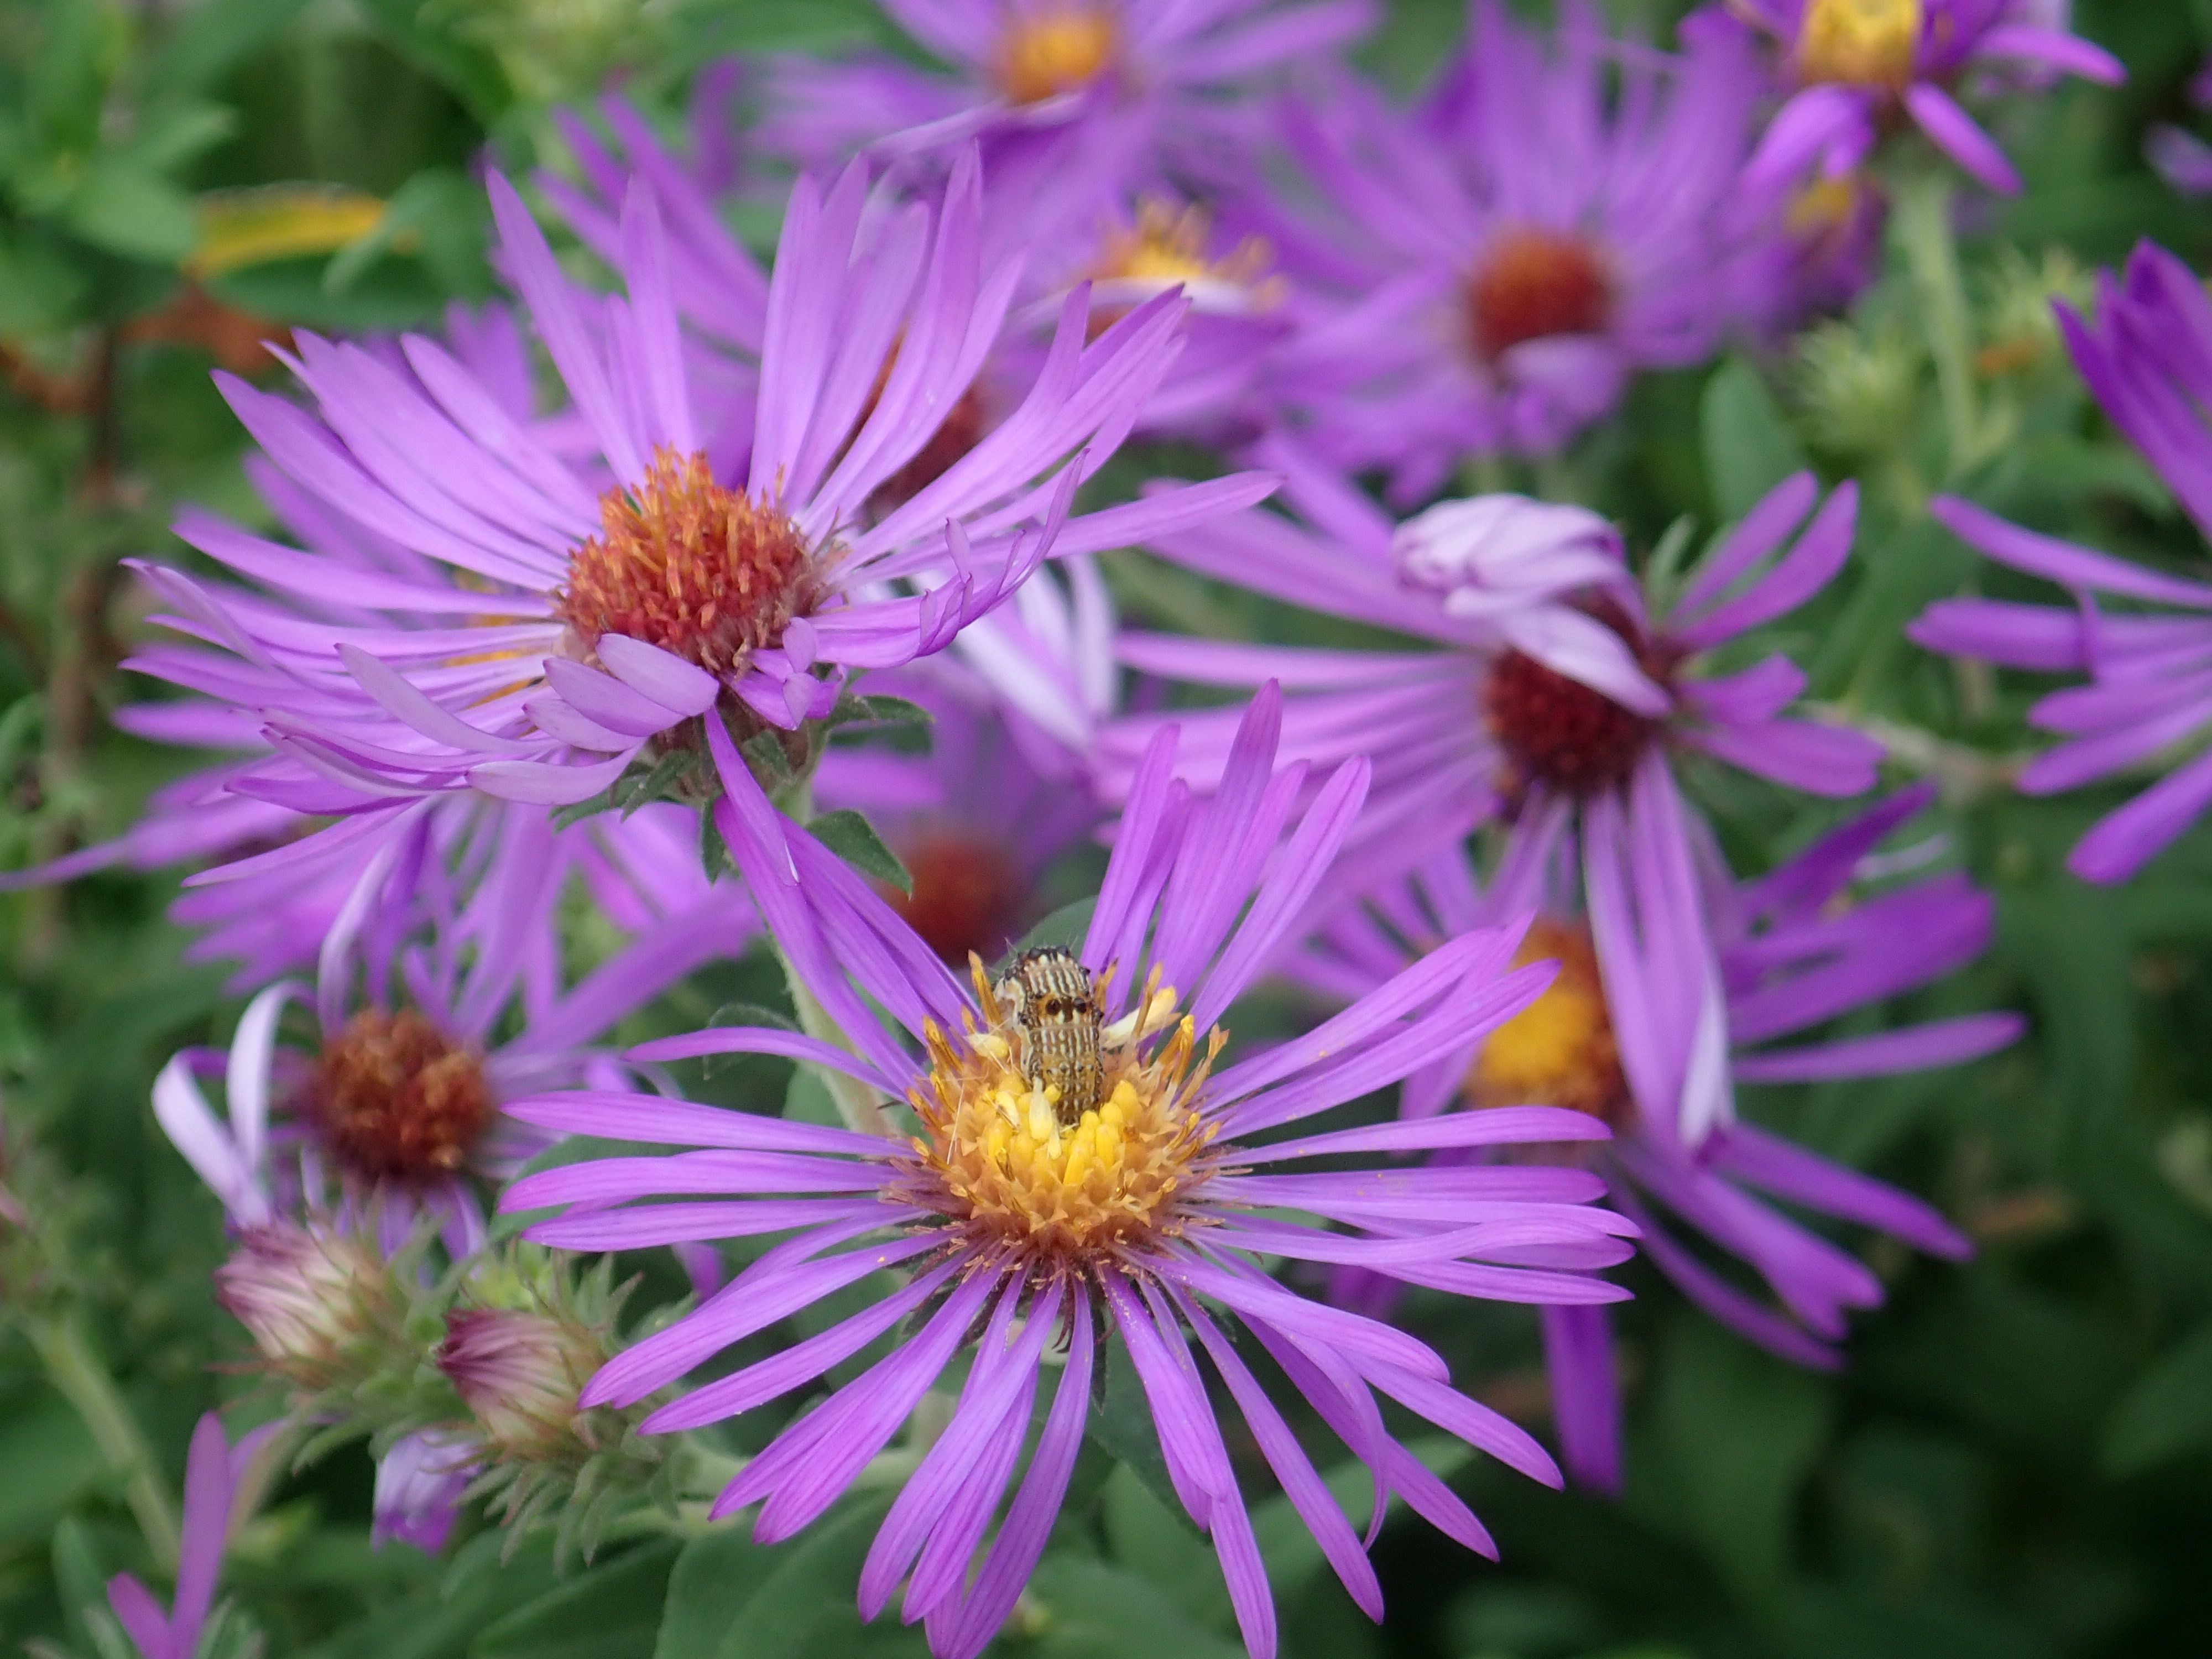 Bright purple New England Aster flowers are surrounded by green leaves.